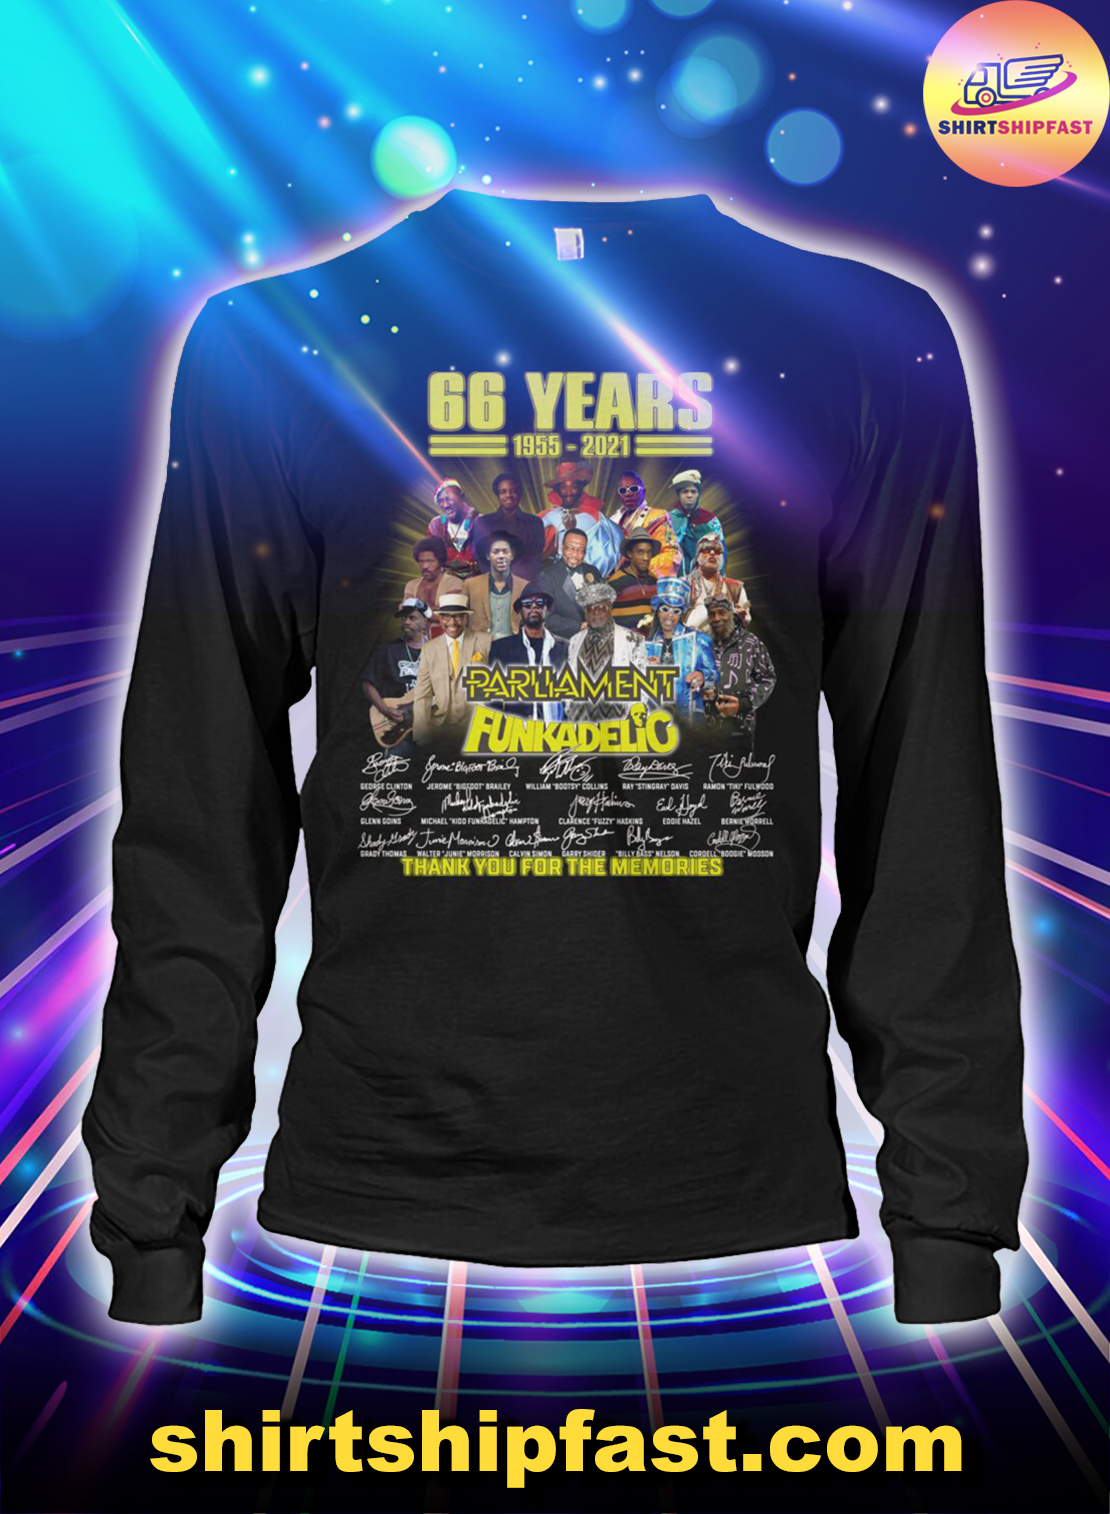 66 years 1955 2021 Parliament Funkadelic thank you for the memories long sleeve tee